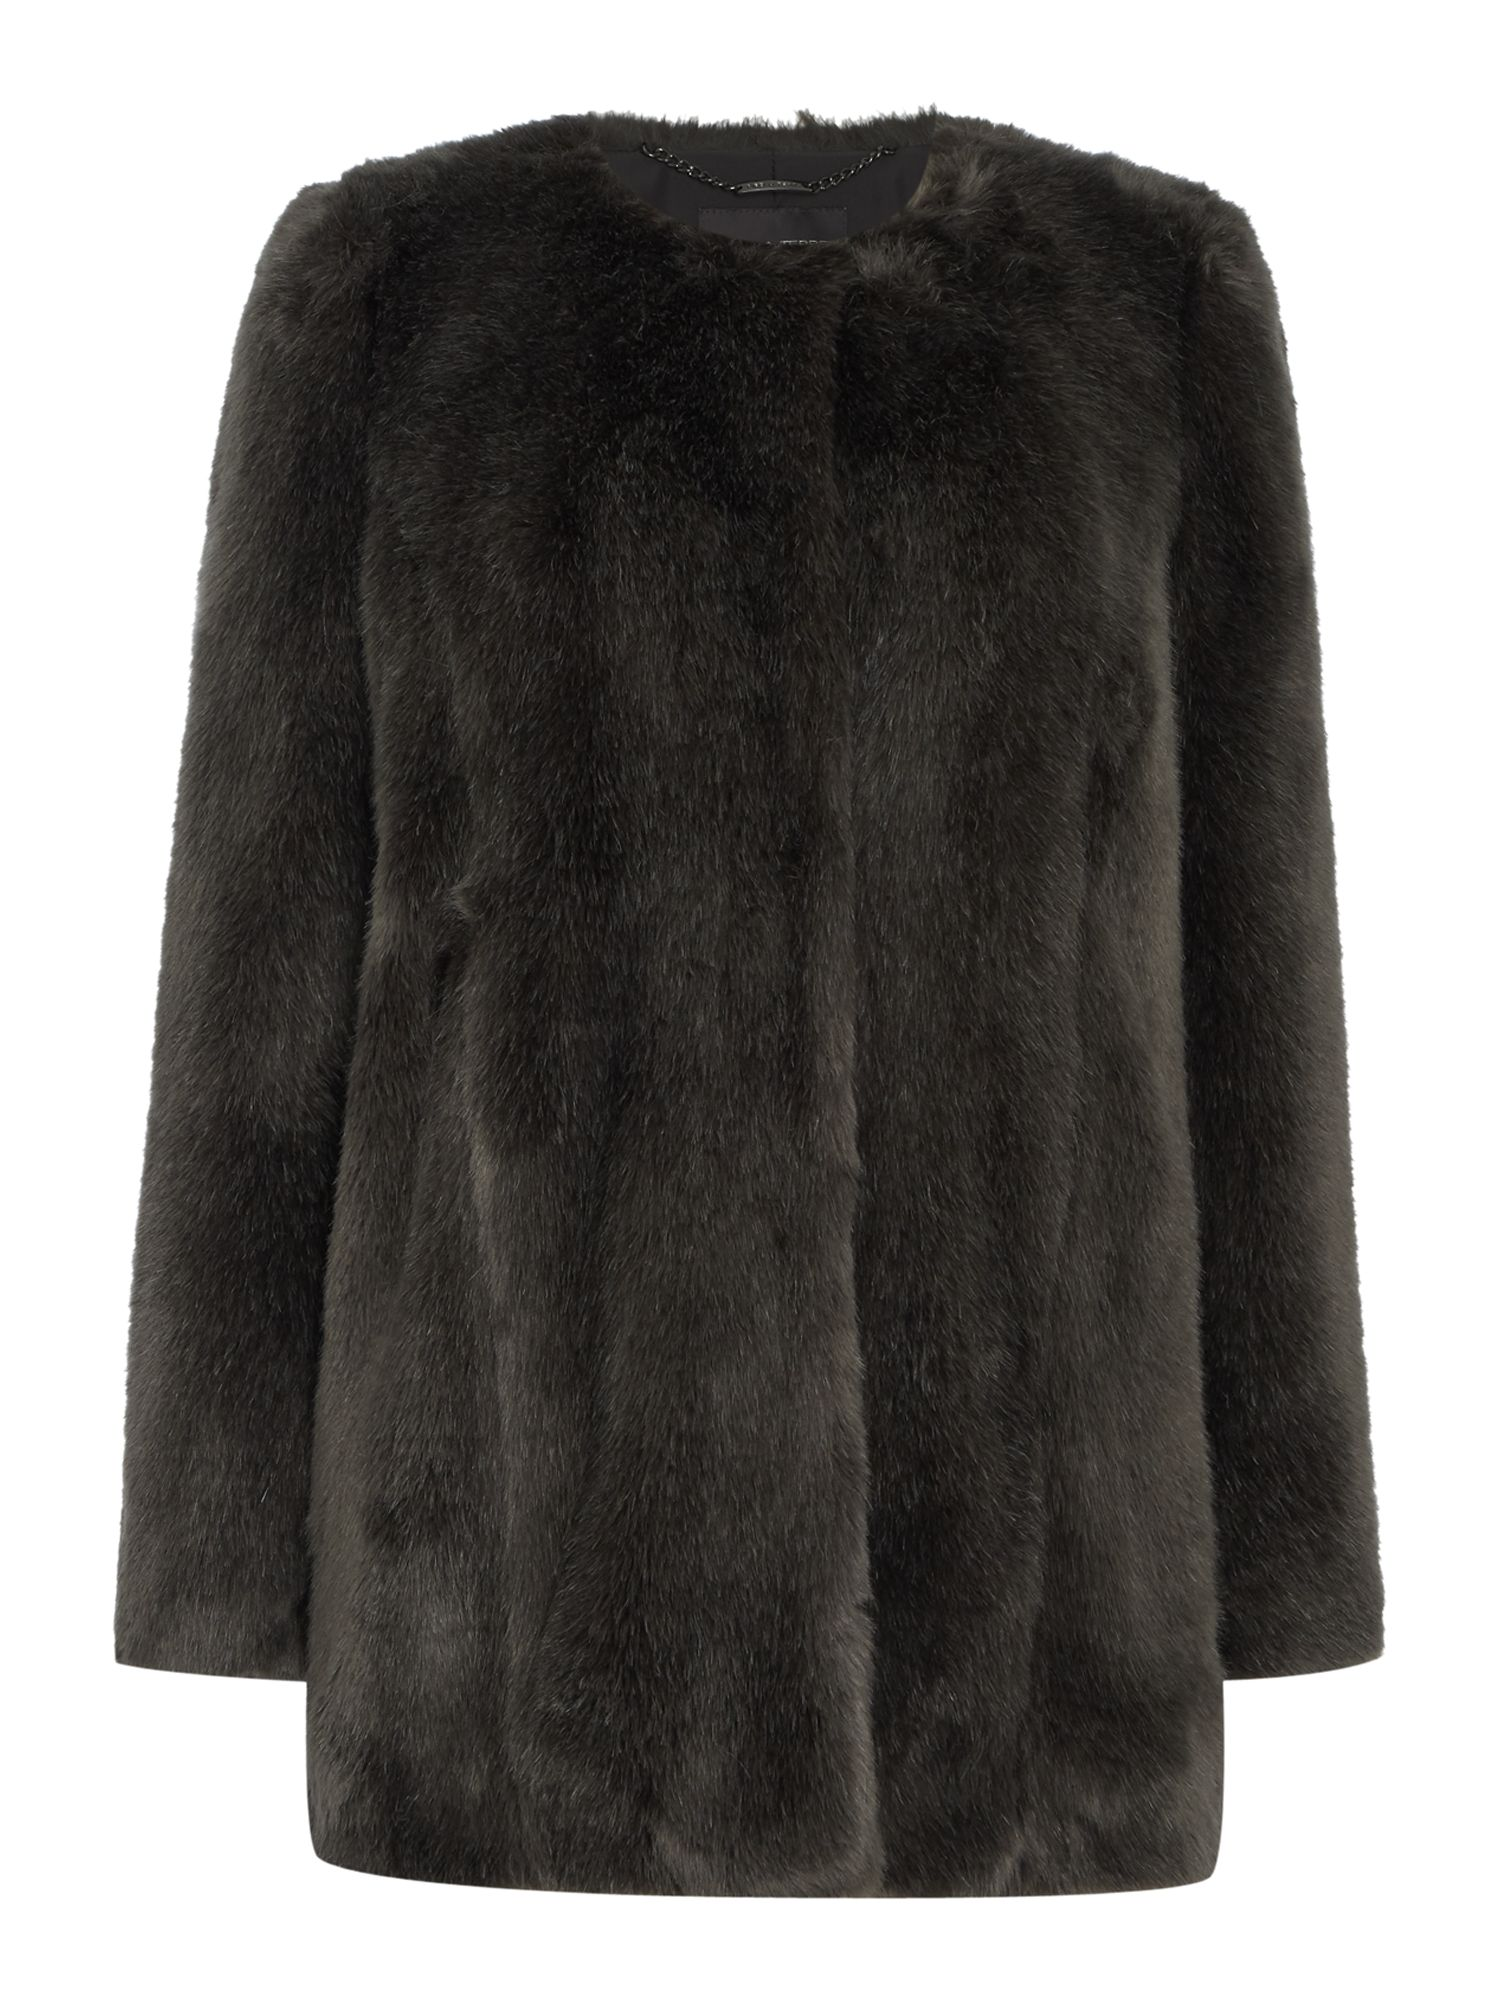 Faux Fur is always in fashion and at Designer Desirables you will find Faux Fur coats, Faux Fur jackets & gilets and Faux Fur boots. Whatever you are looking for we have it. Faux fur is easy to wear and washable so a great alternative to real fur.